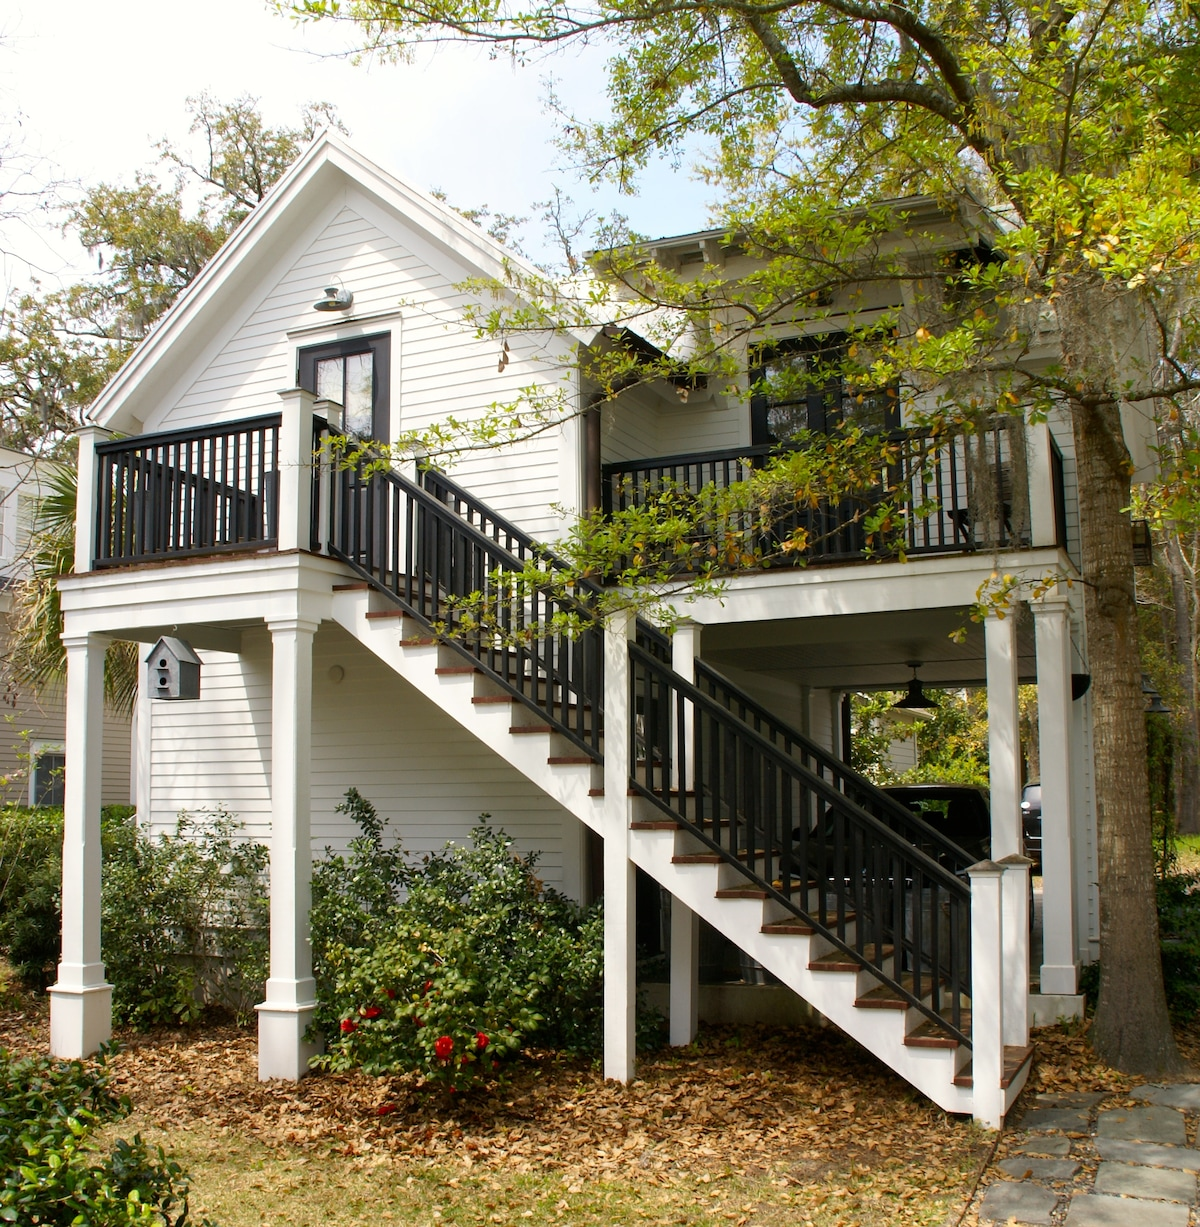 Carriage House suite in Habersham